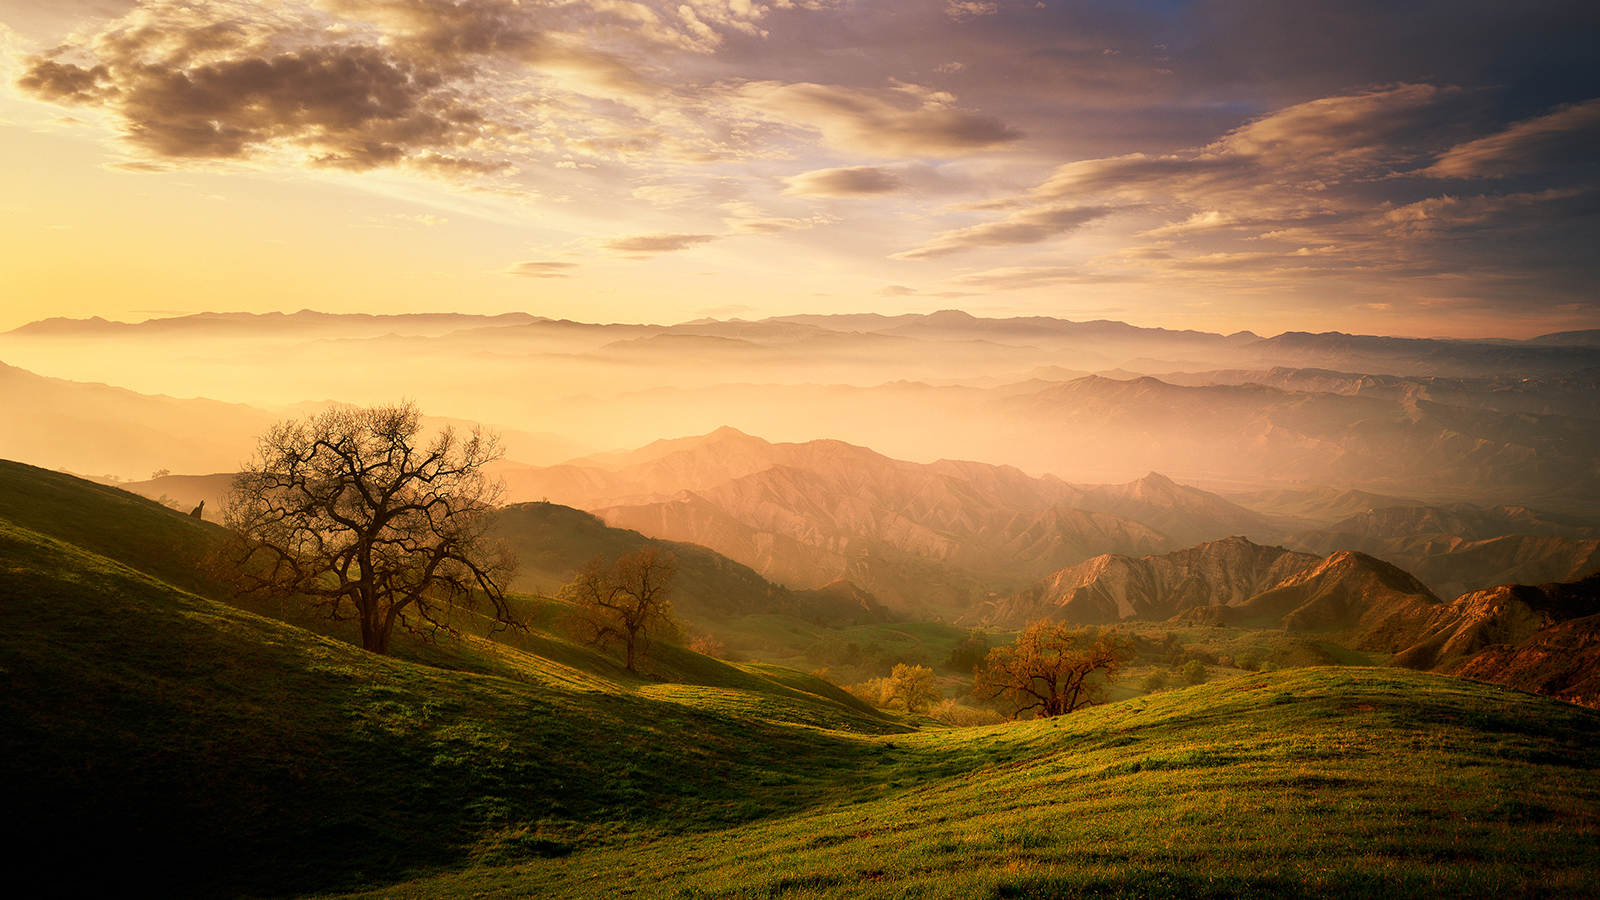 Landscape Photography Course with Marc Muench